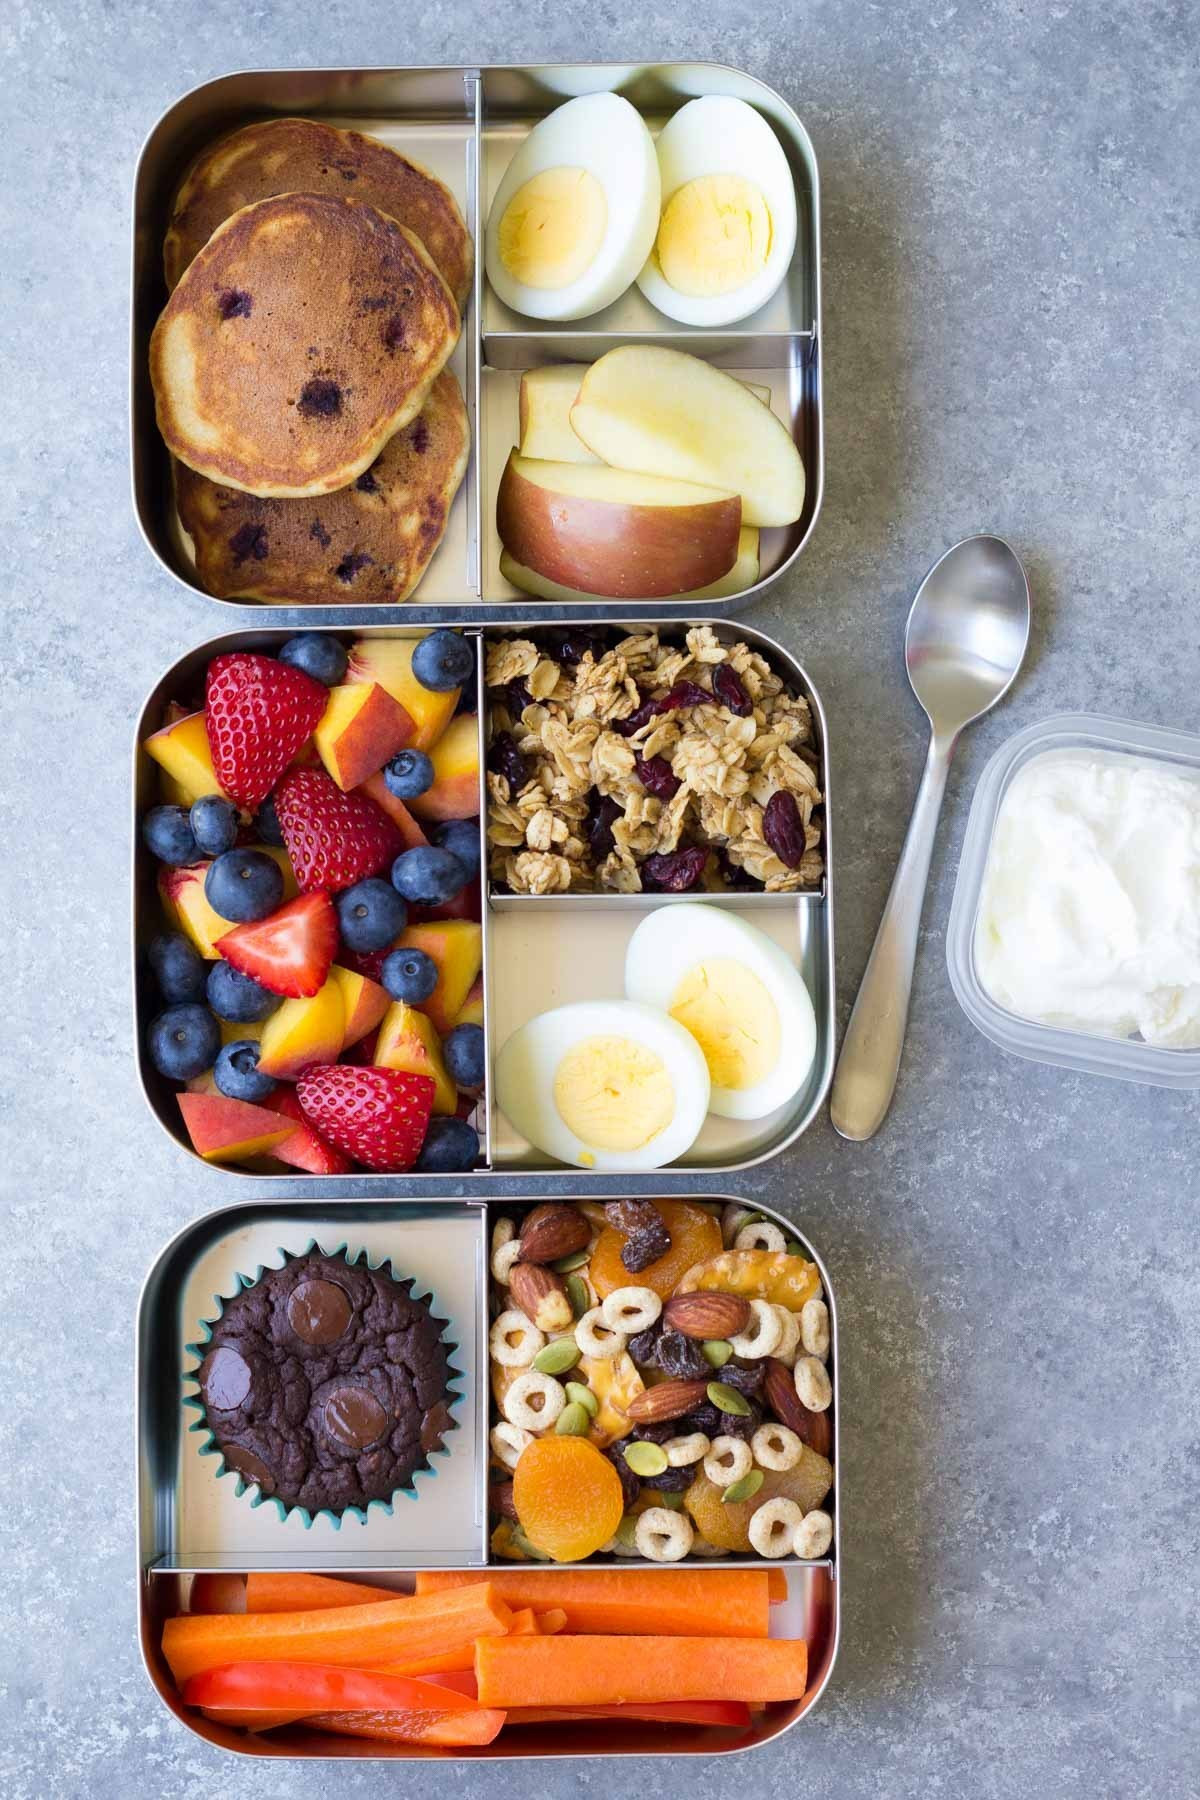 Easy Healthy Lunches To Go  250 Easy School Lunch Box Ideas Dishes and Dust Bunnies